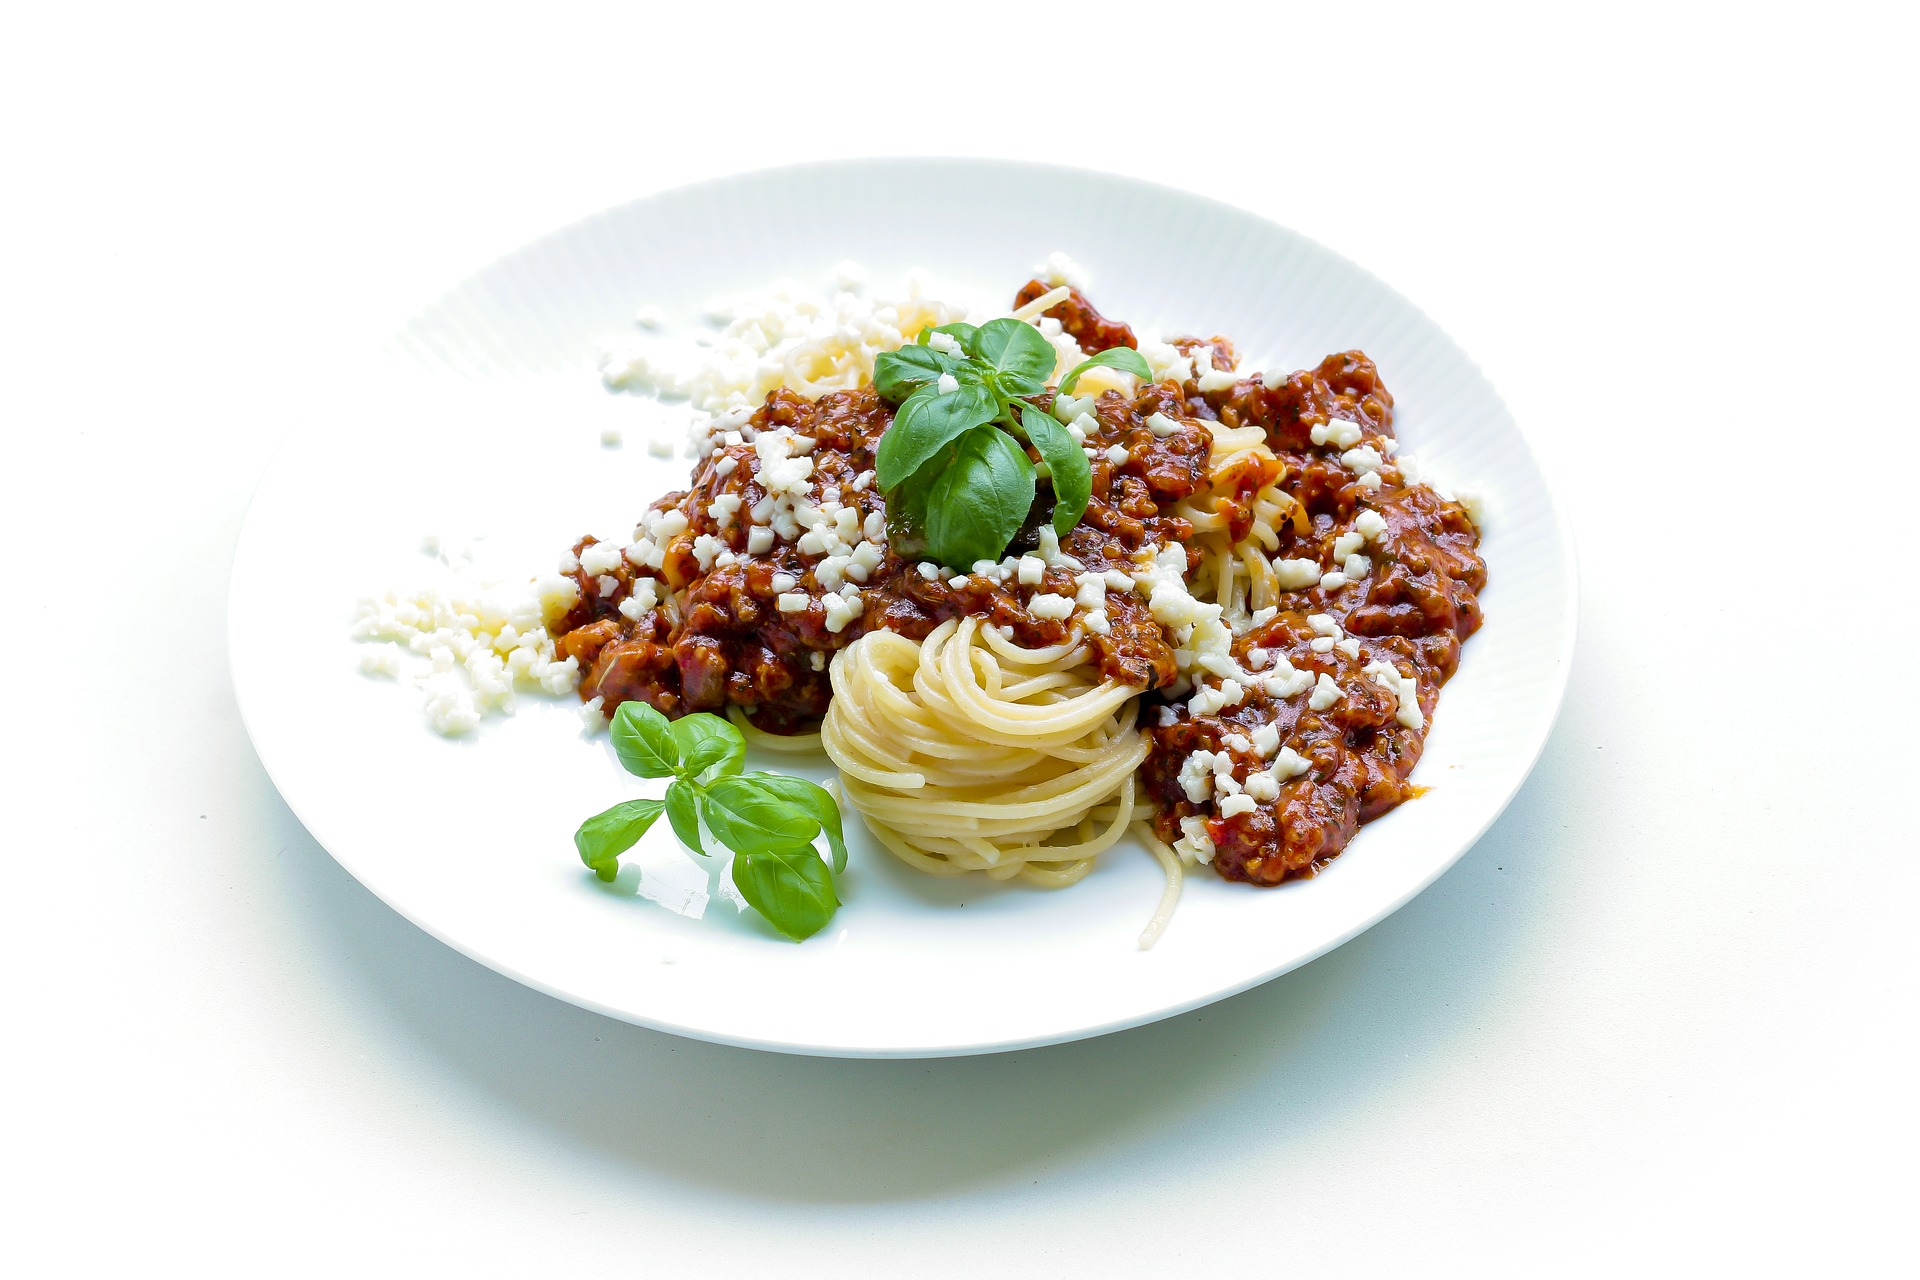 a plate of pasta with pasta sauce, herbs and cheese